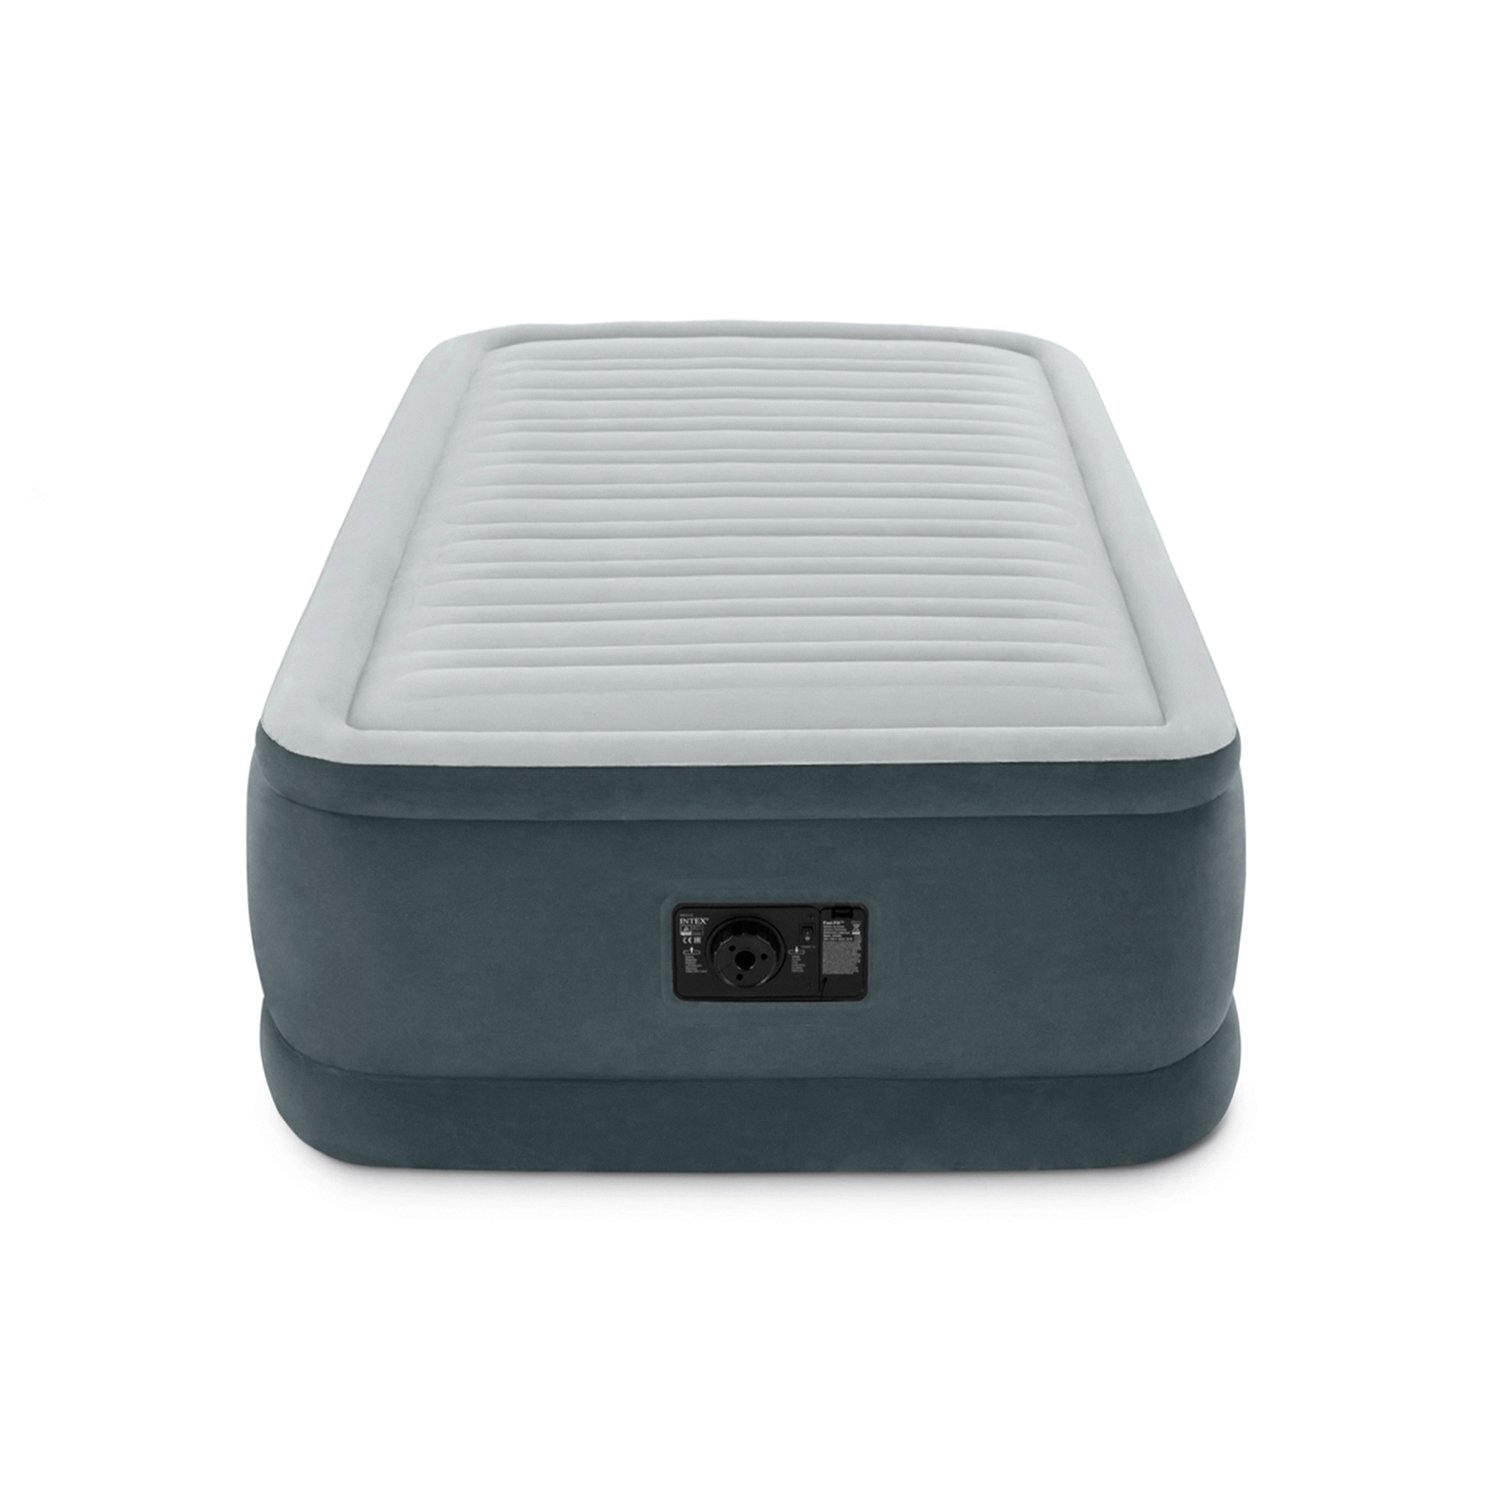 Intex Comfort Plush Elevated Dura-Beam Airbed with Built-in Electric Pump, Bed Height 18'', Twin by Intex (Image #2)